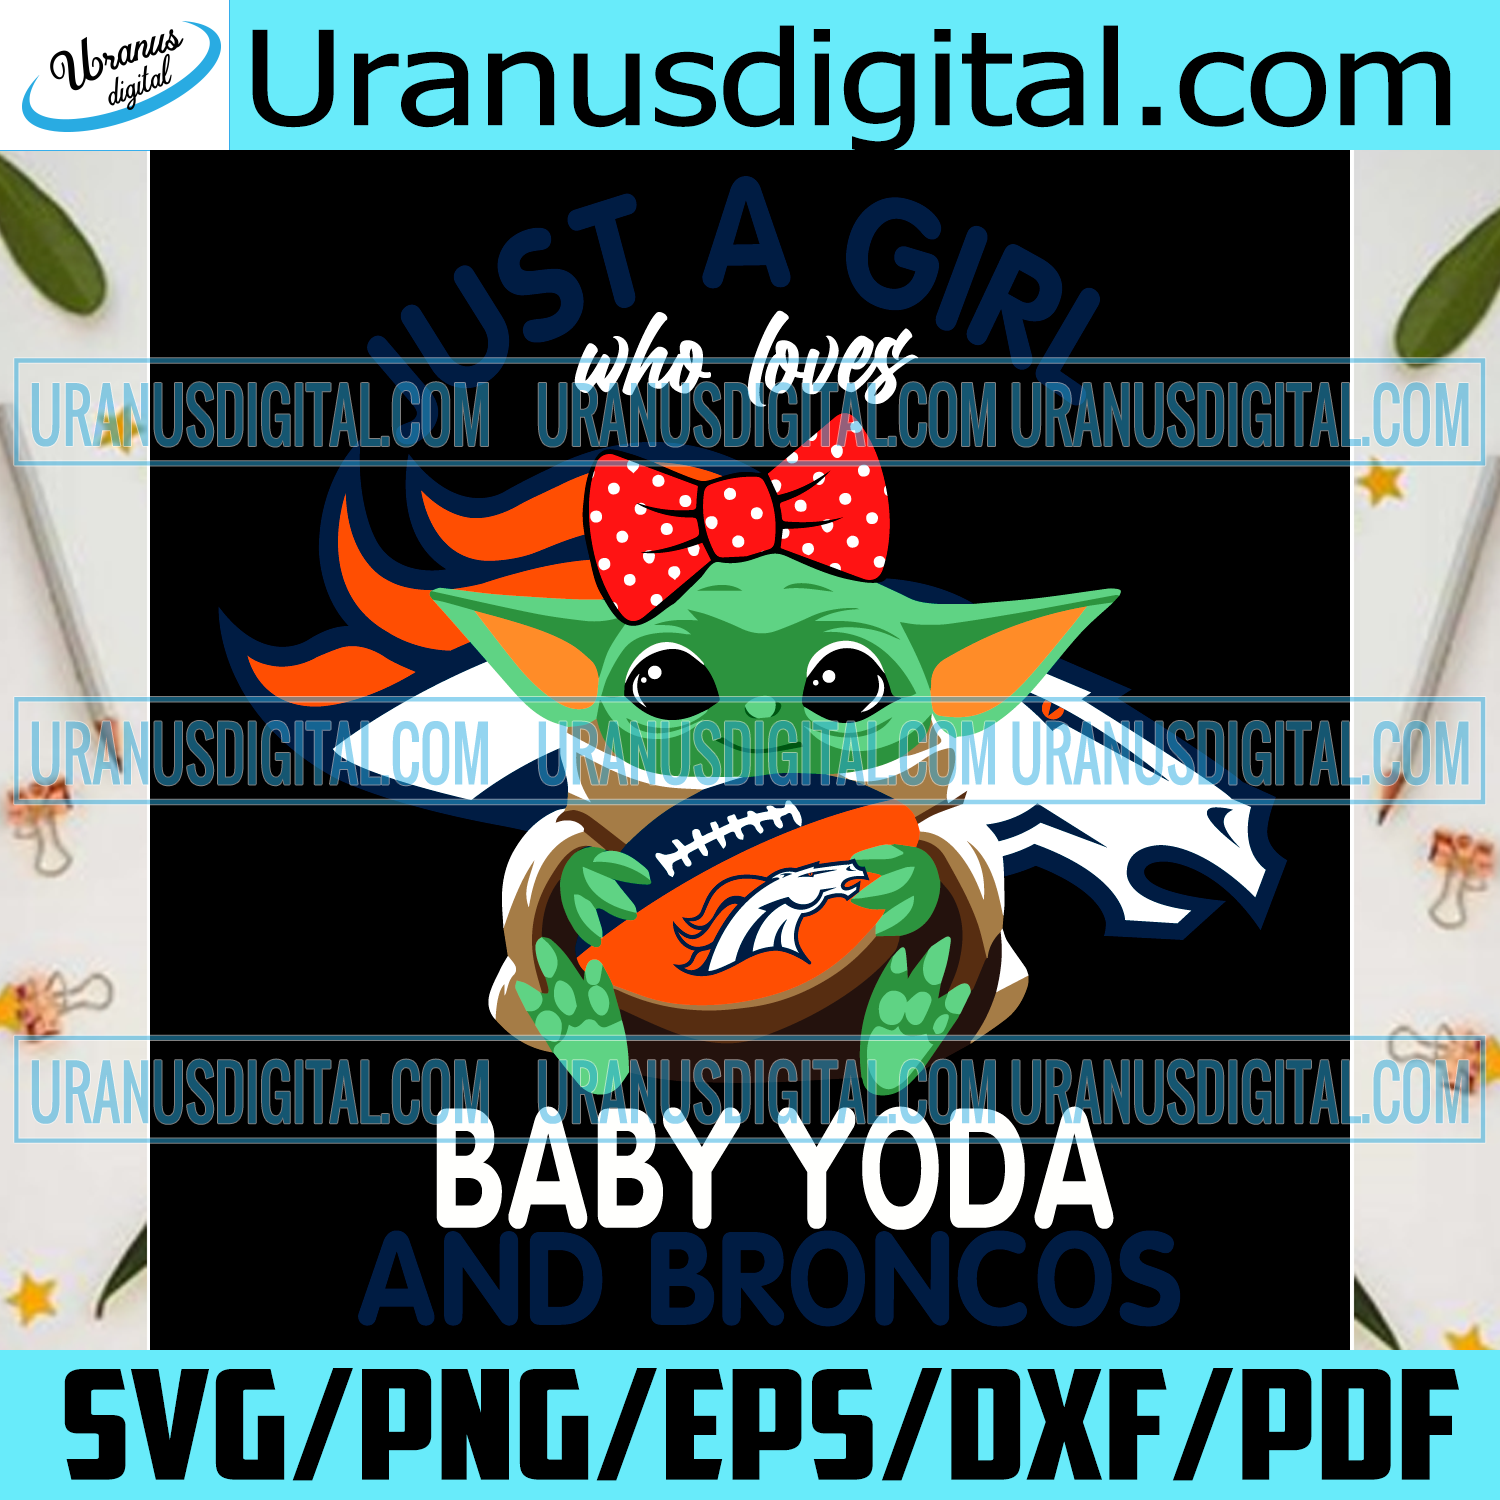 Just A Girl Who Loves Baby Yoda And Denver Broncos Svg, Sport Svg, Girl Svg, Baby Yoda Svg, Love Svg, Star Wars Svg, Denver Broncos Svg, Denver Broncos Logo Svg, Broncos Svg, Broncos Fans, Broncos Football Svg, NFL Svg, Football Svg